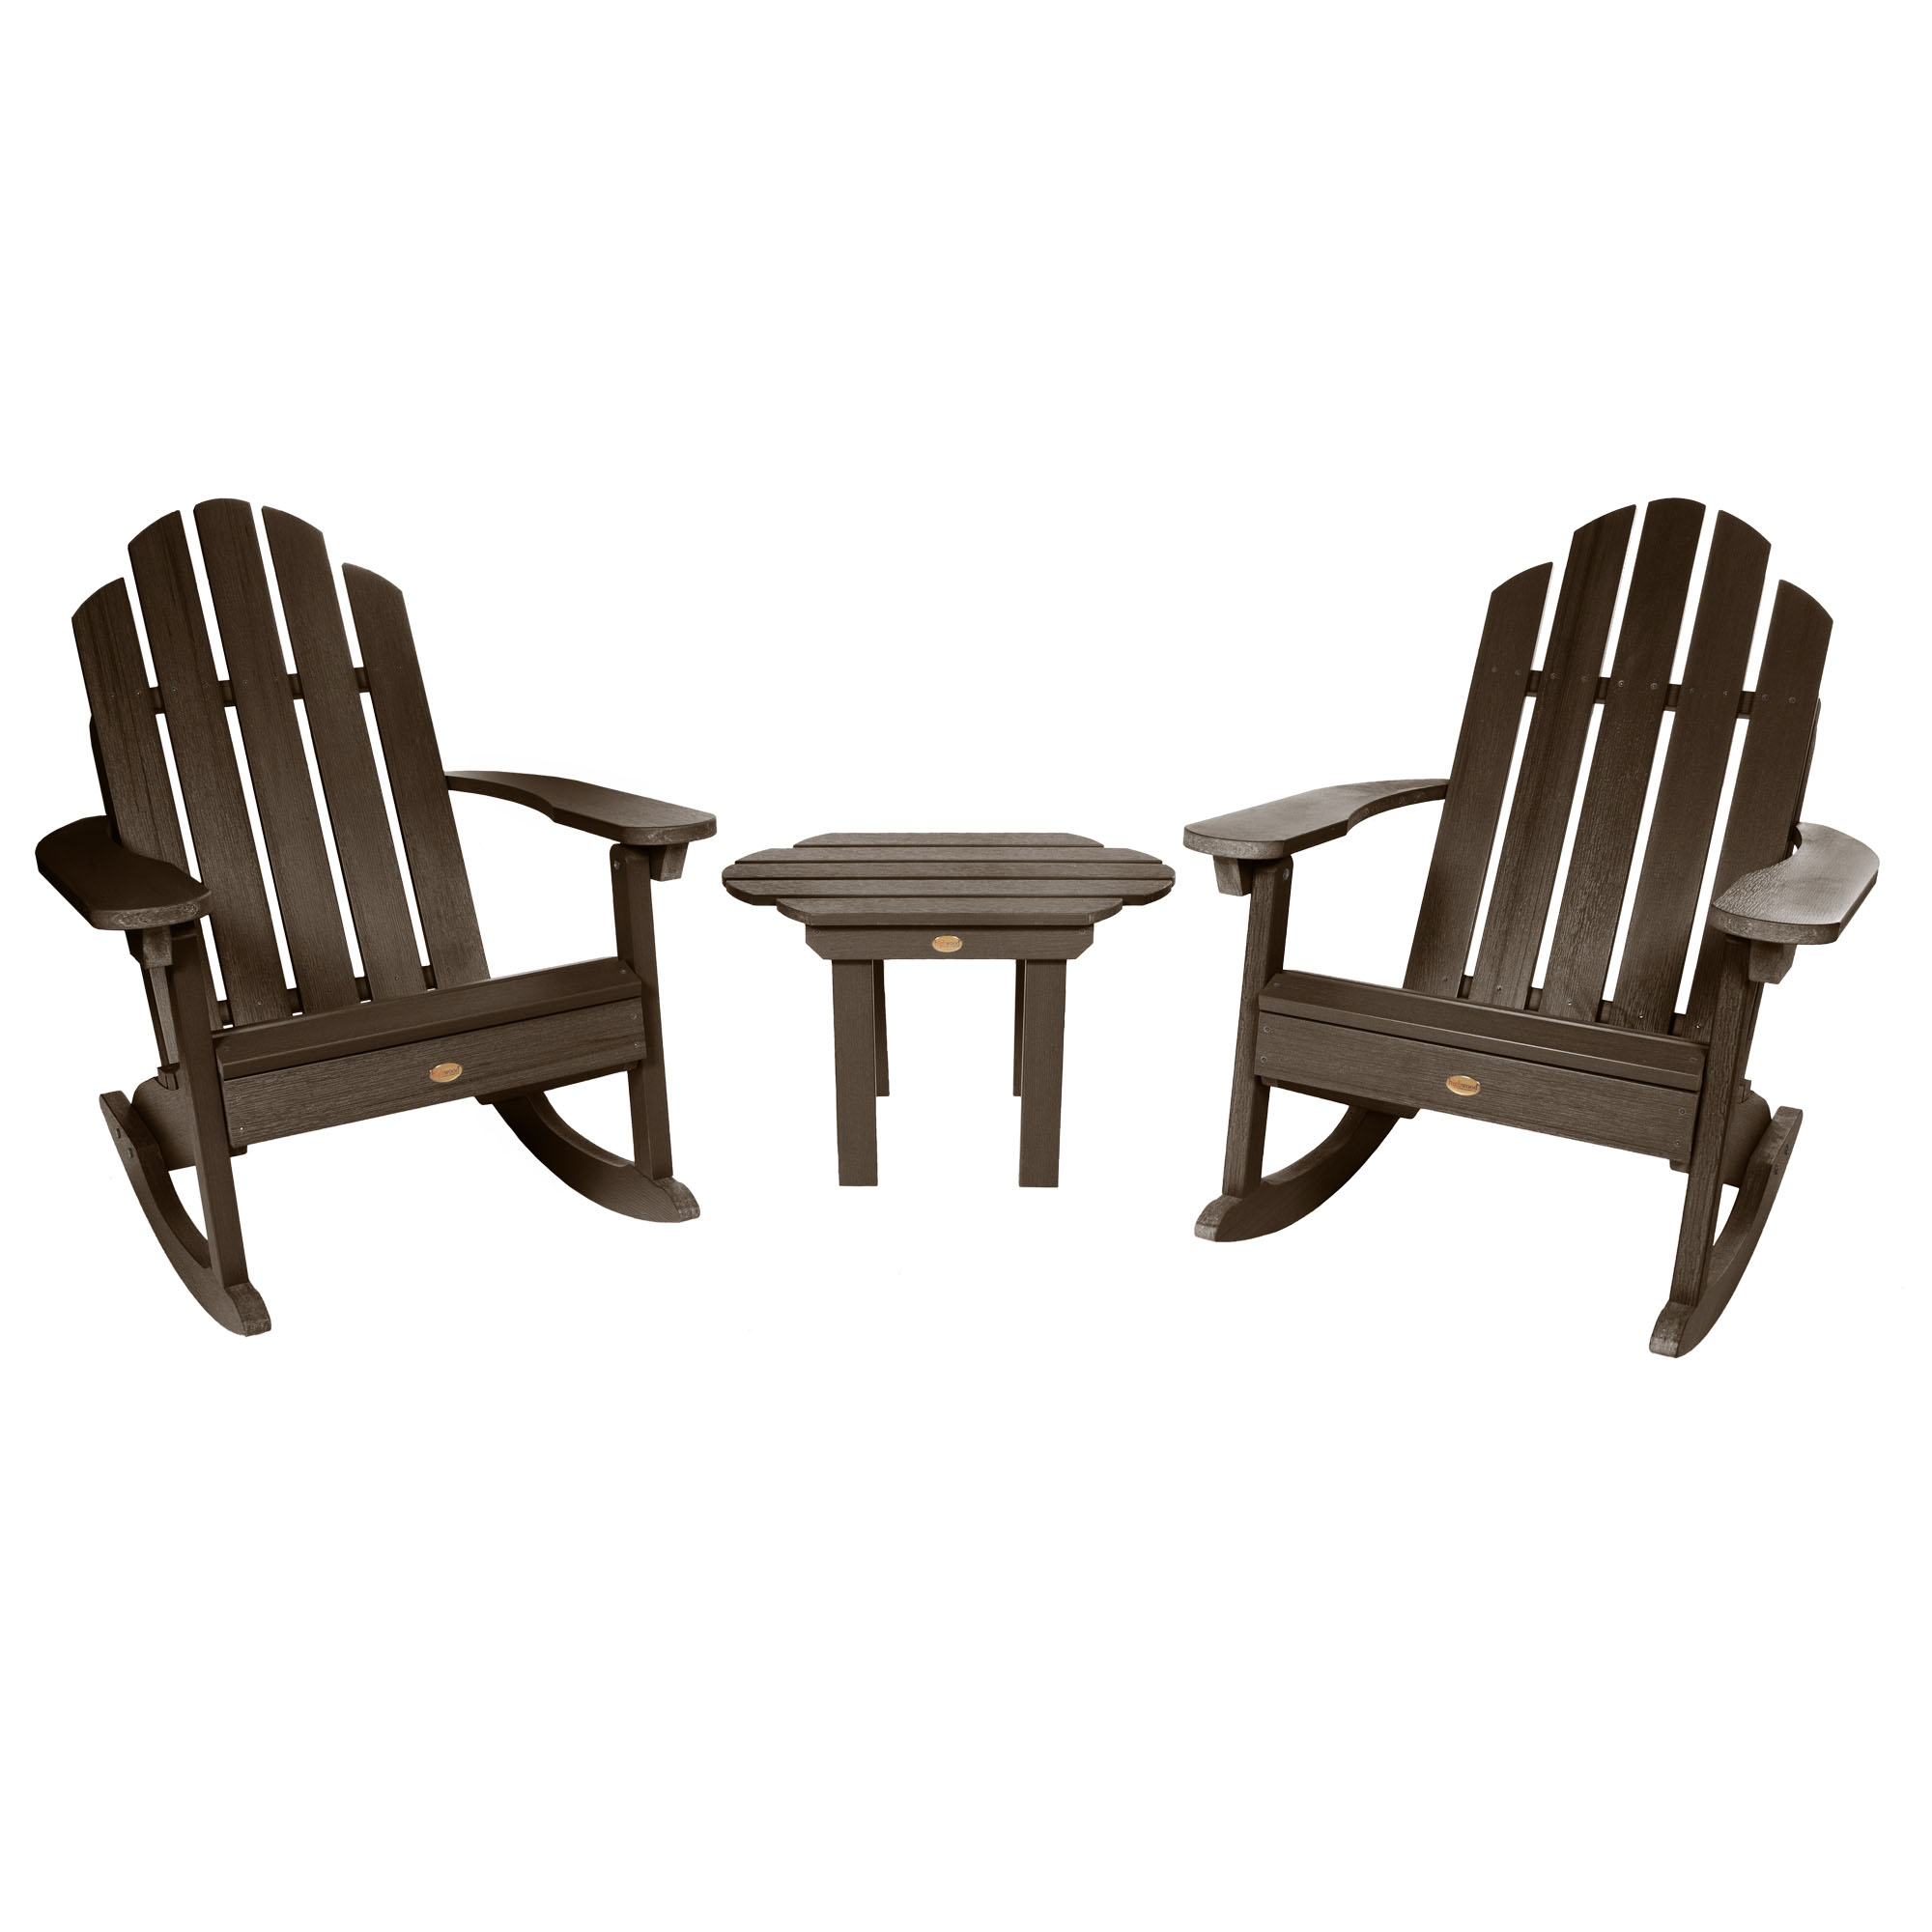 2 Classic Westport Adirondack Rocking Chairs with 1 Classic Westport Side Table